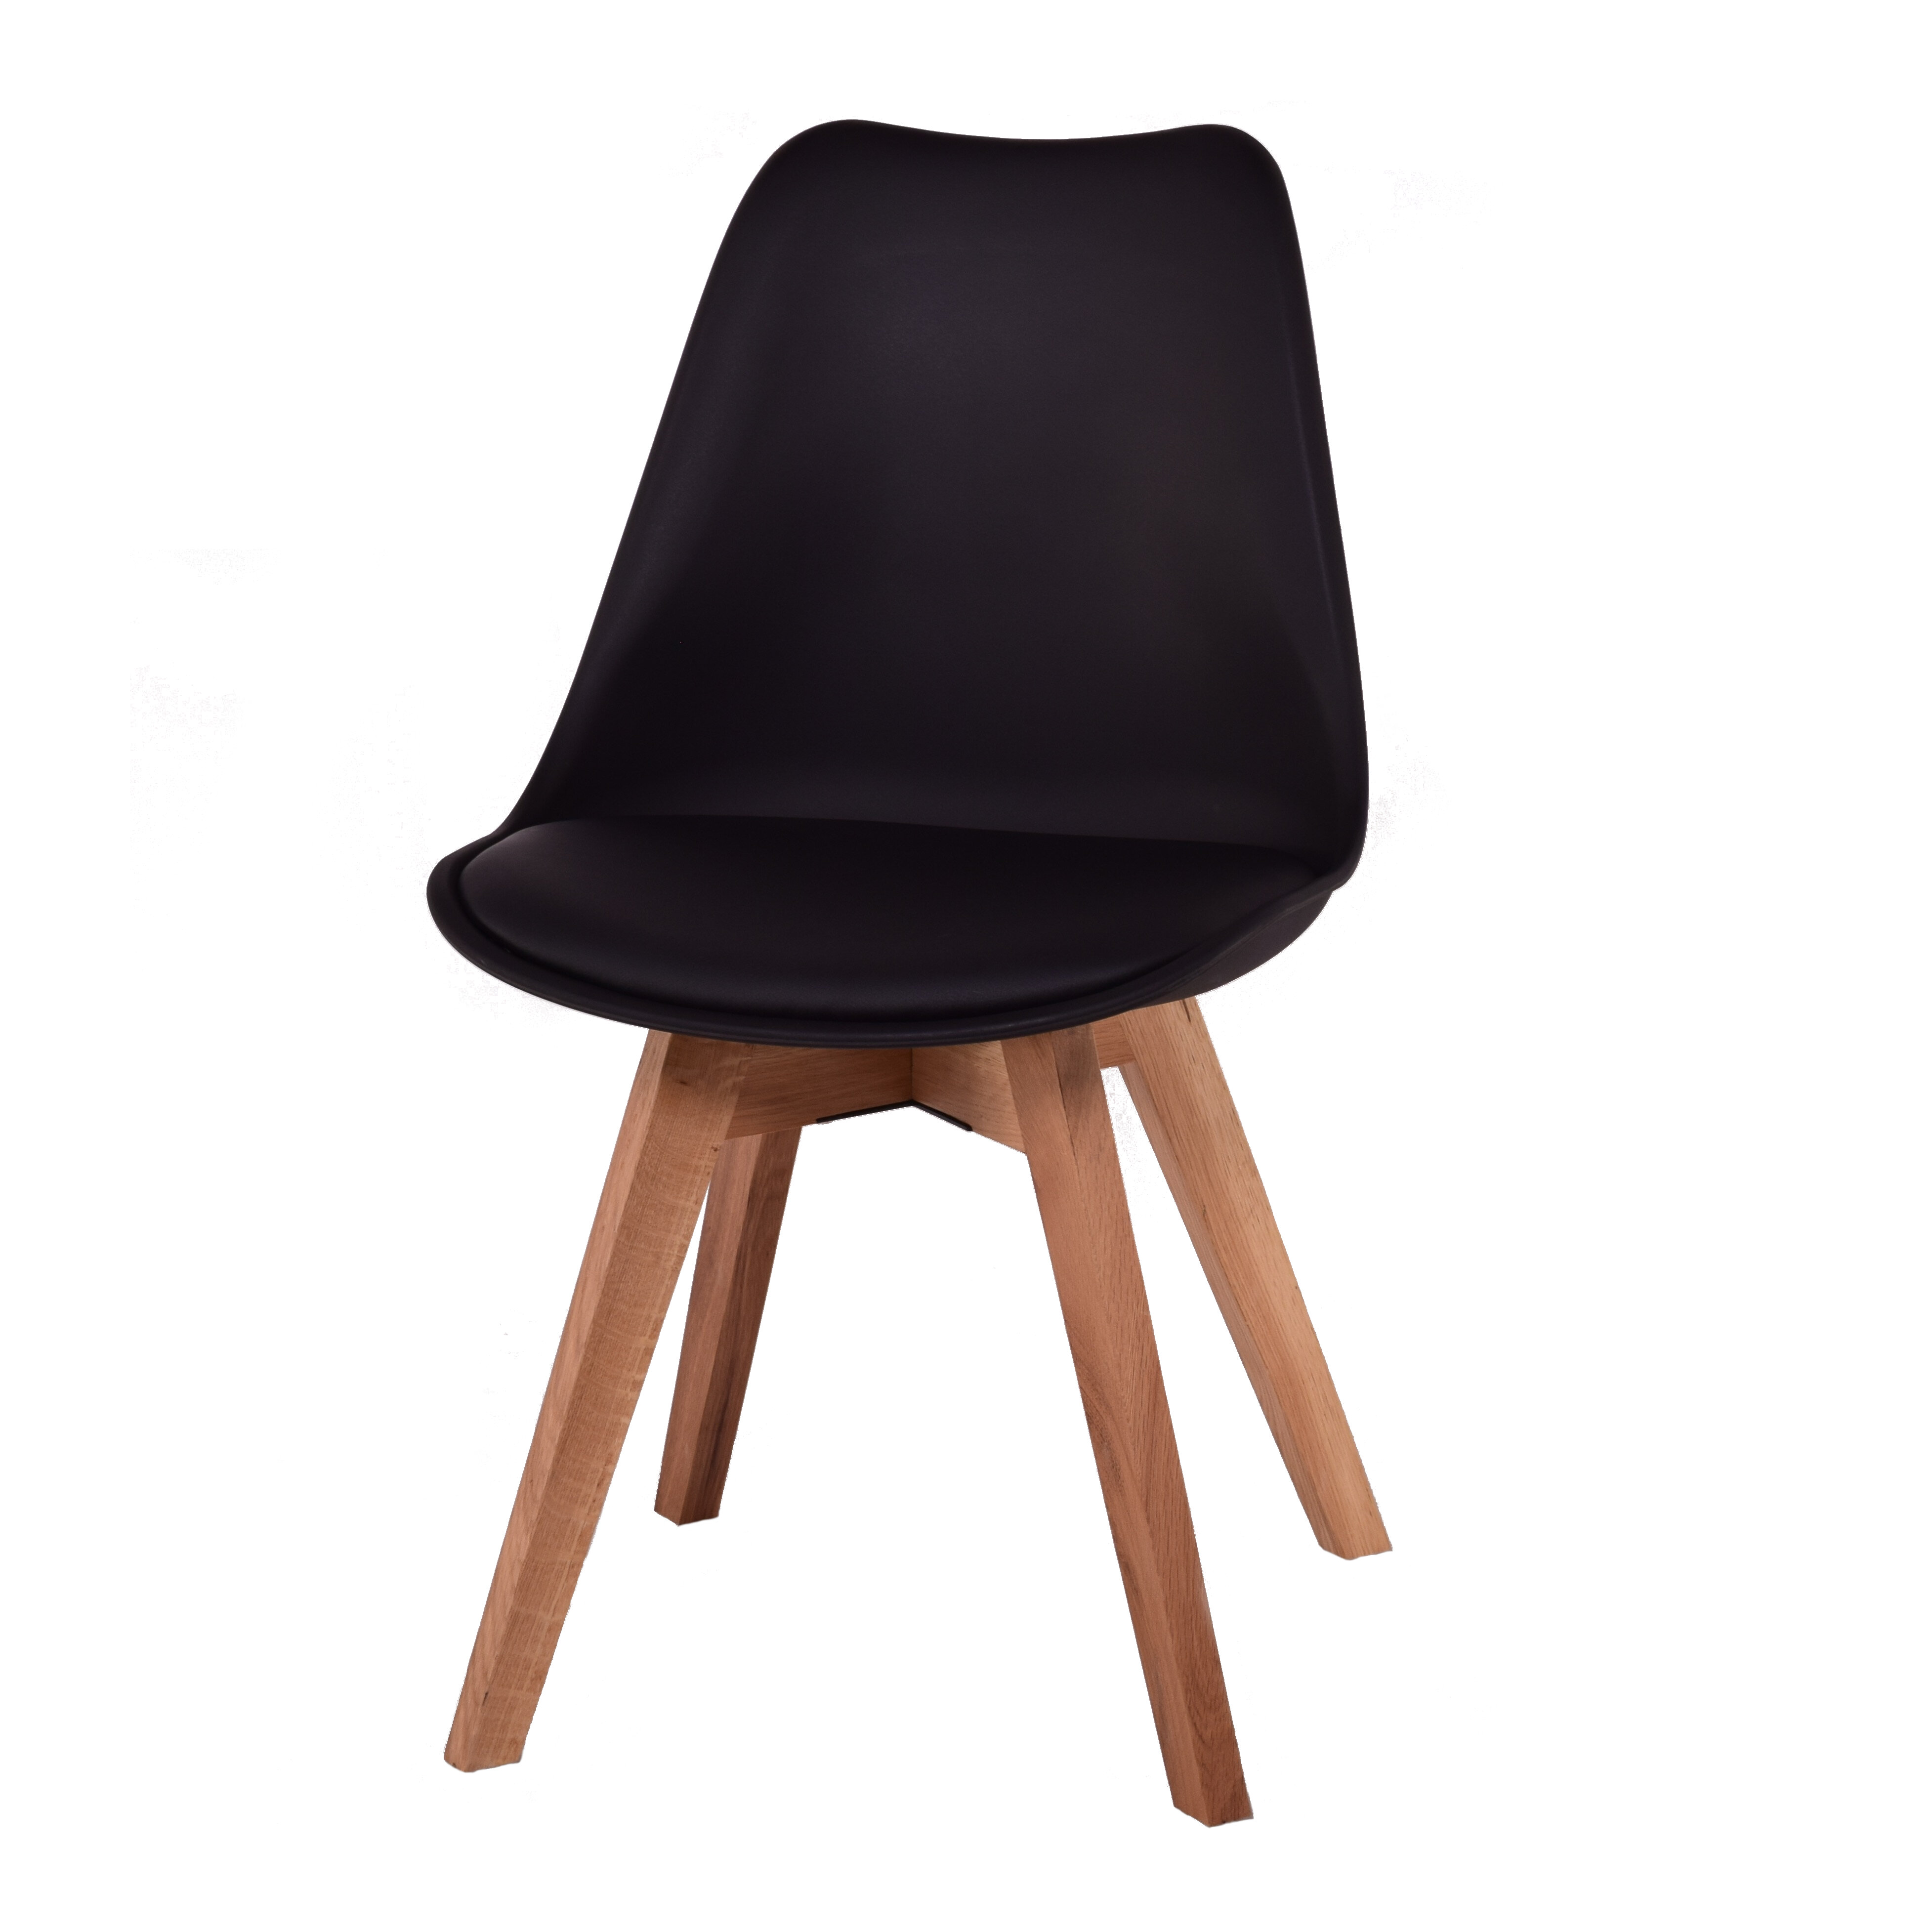 Surprising Como Upholstered Dining Chair Andrewgaddart Wooden Chair Designs For Living Room Andrewgaddartcom